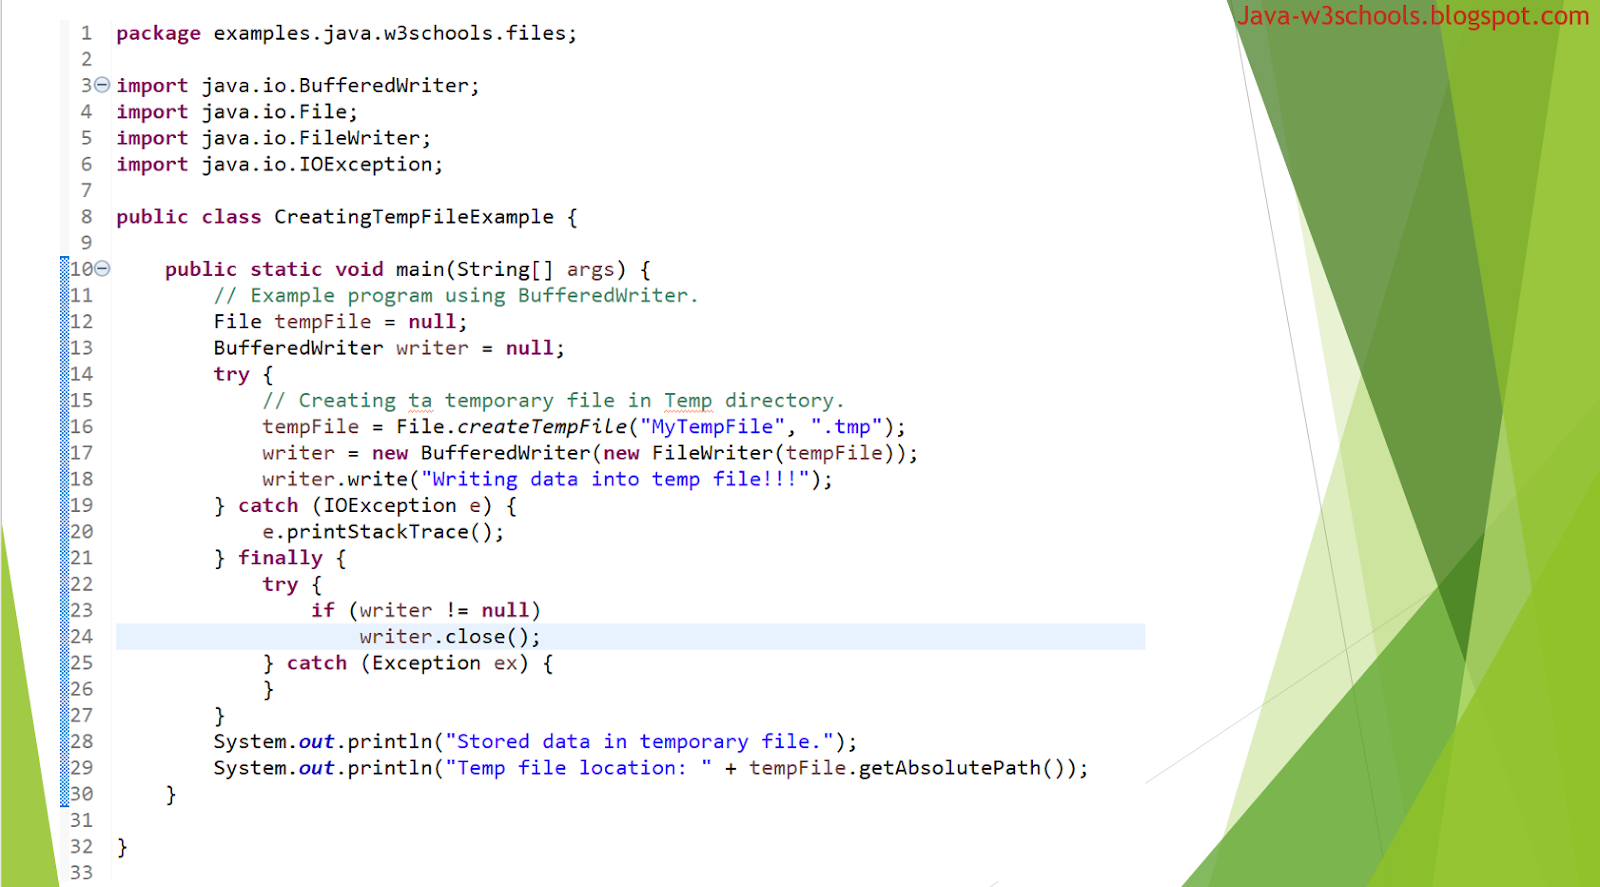 Program: How to write or store data into temporary file in java